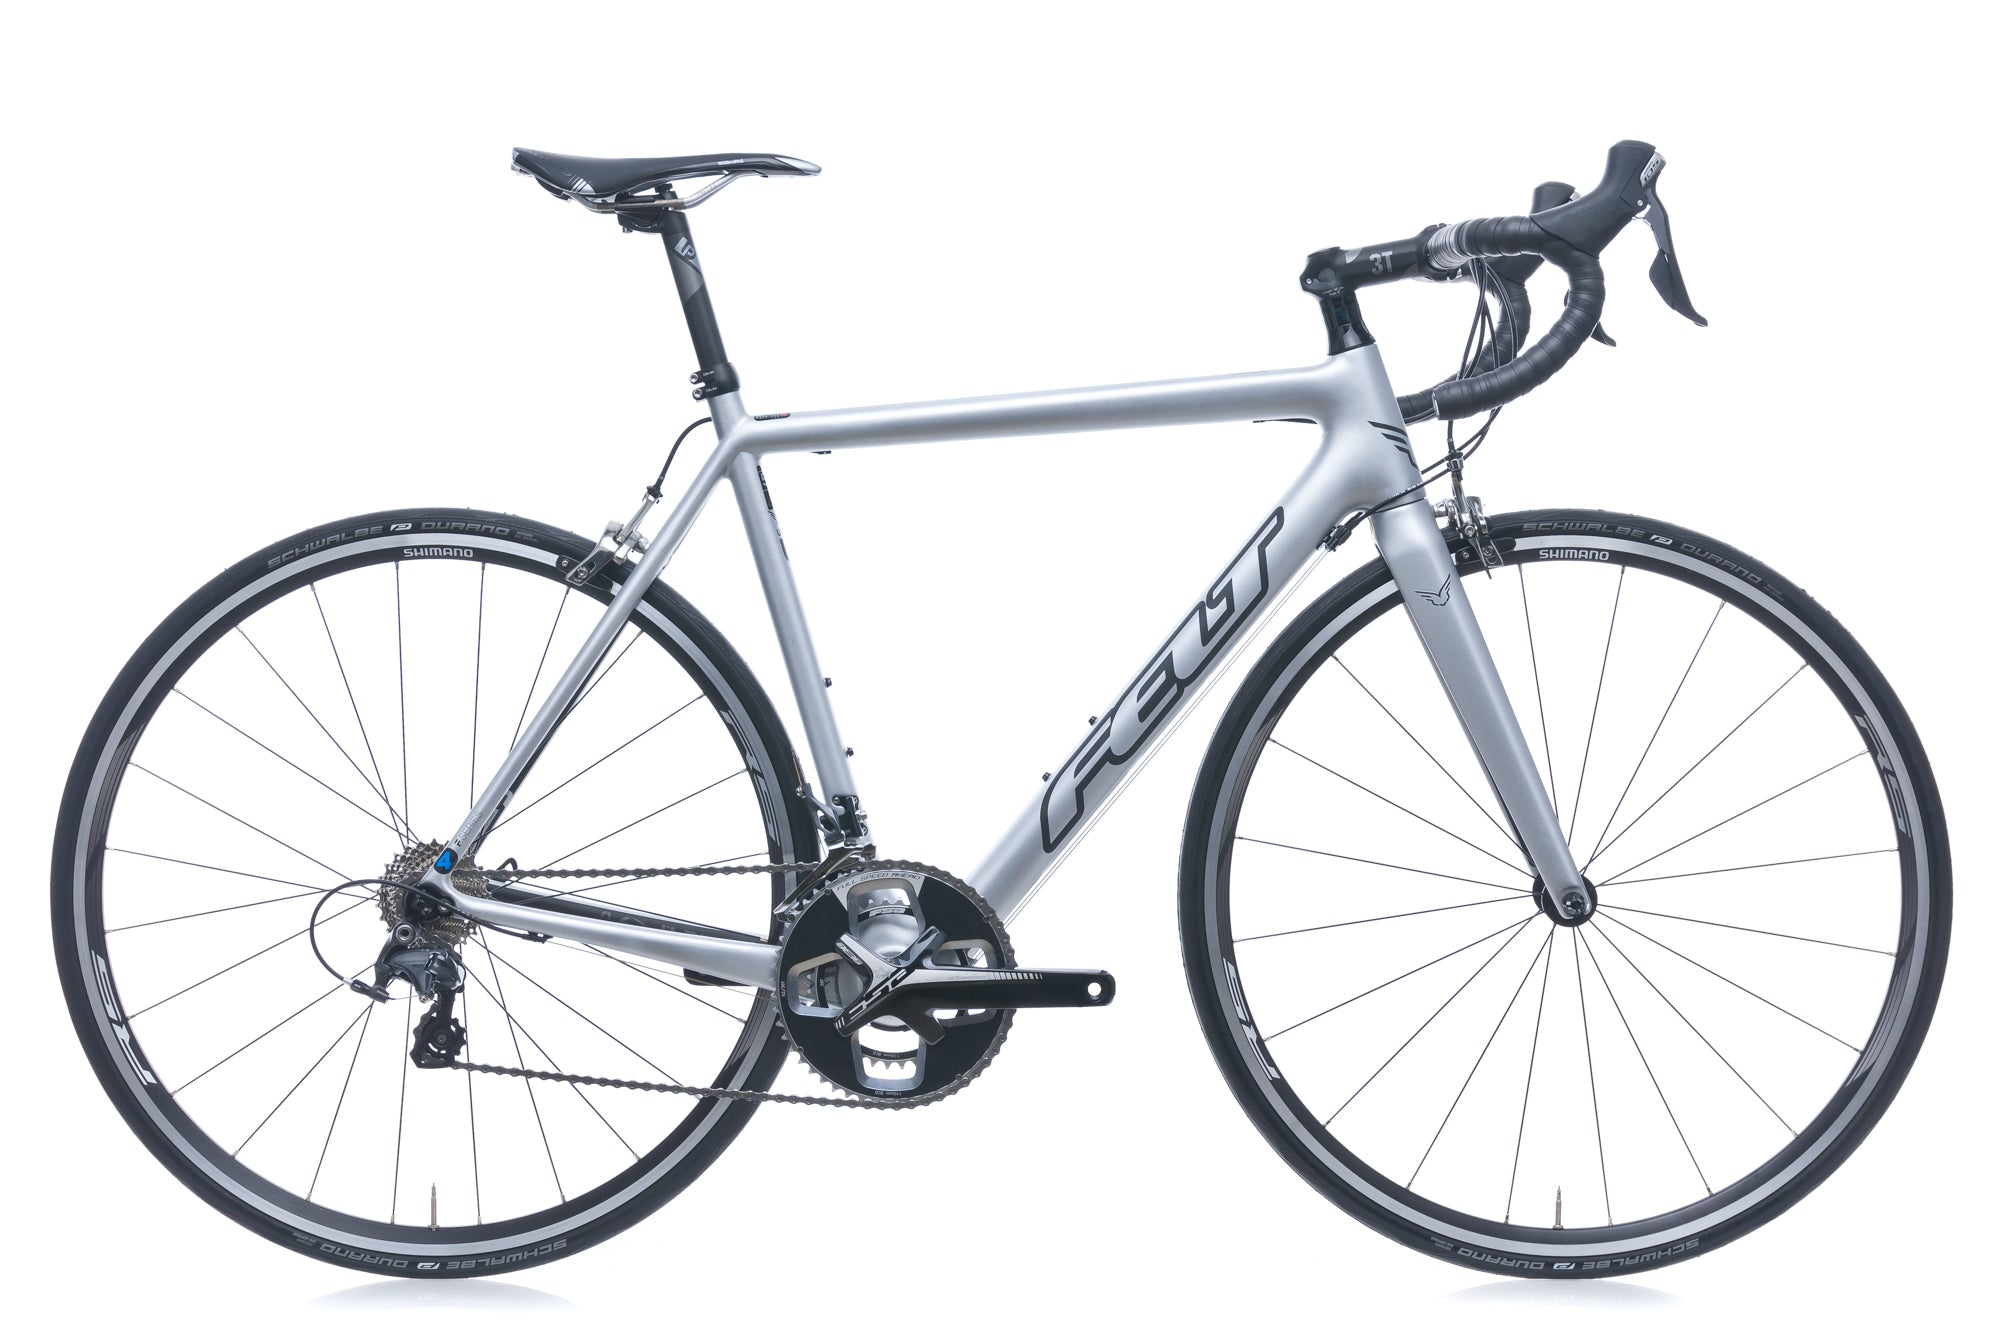 Felt F4 56cm Bike - 2016 drive side